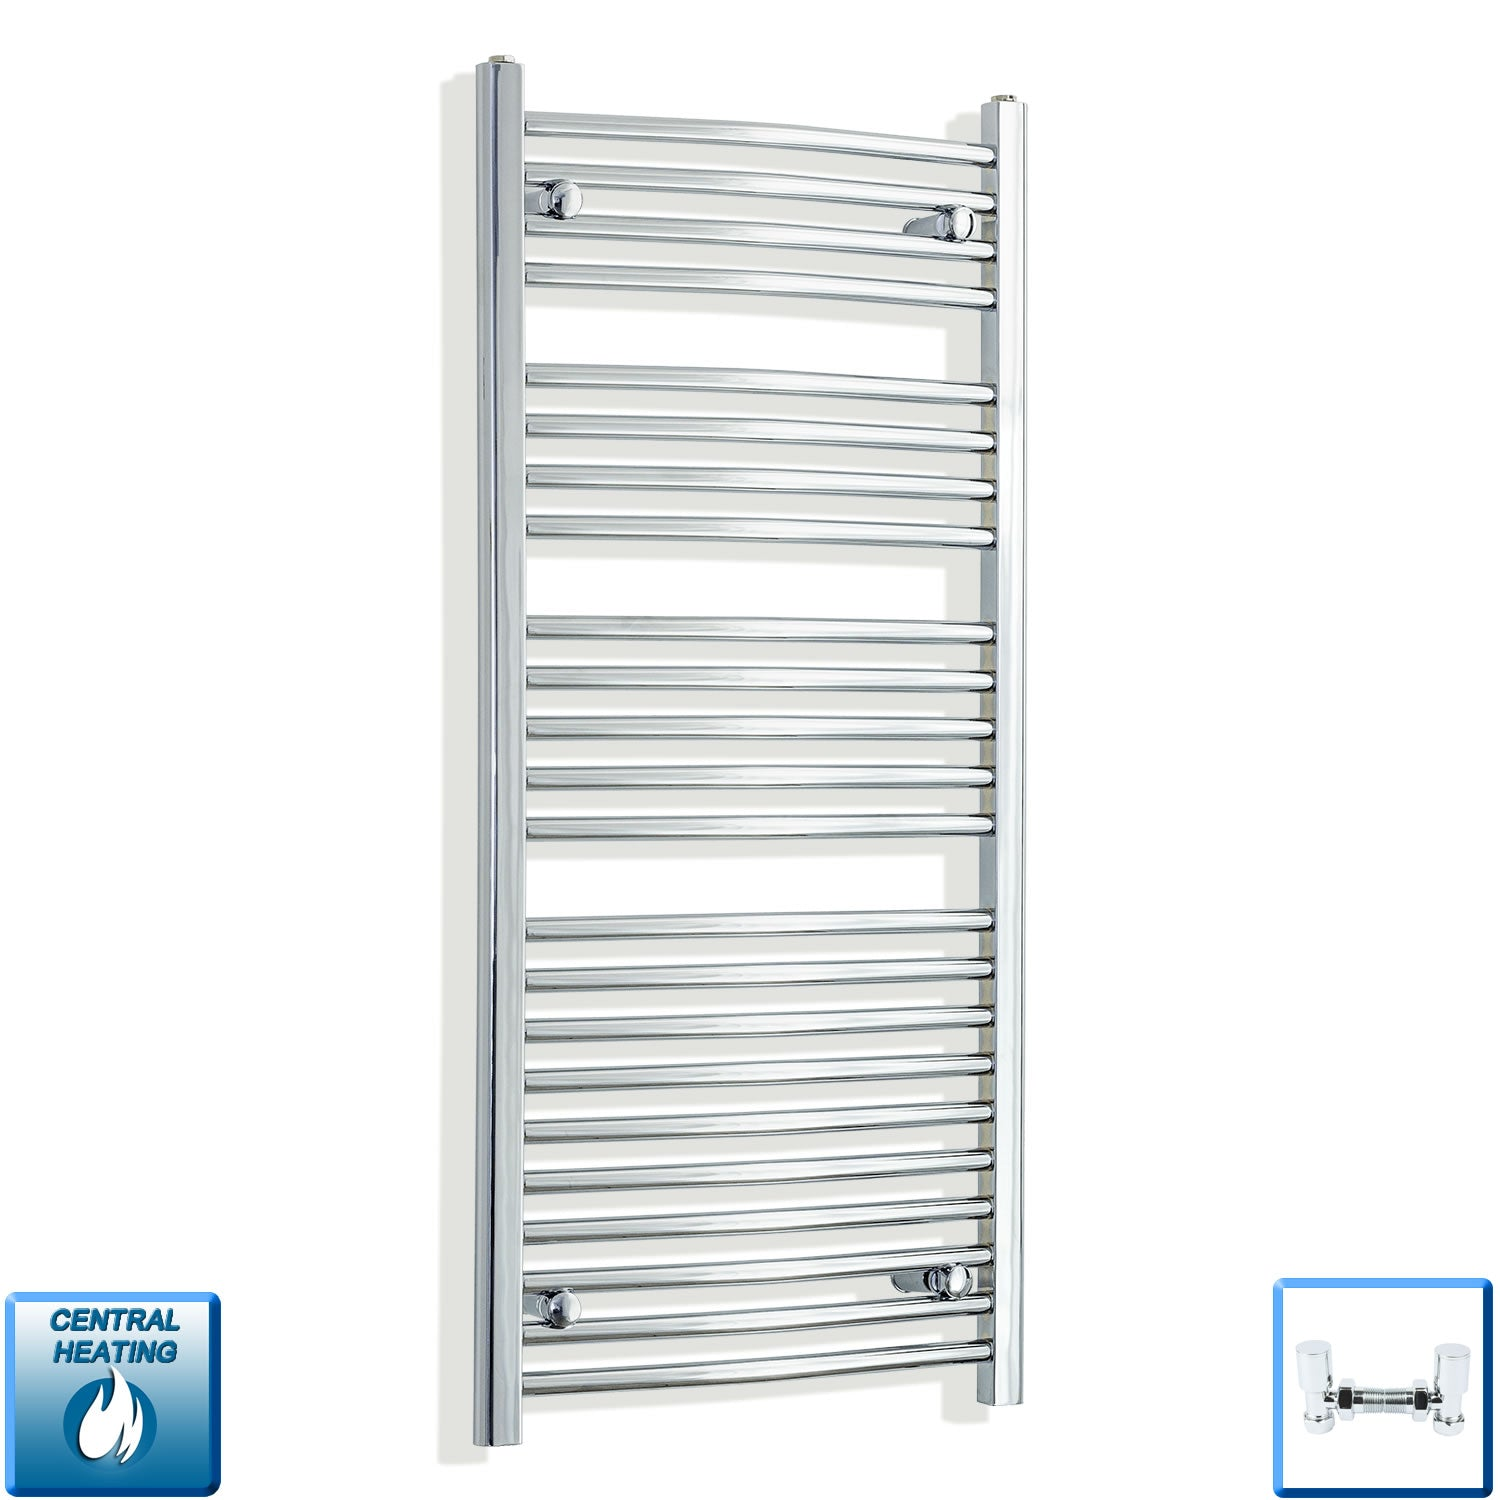 550 x 1200 Curved Chrome Heated Towel Rail Radiator Gas or Electric,With Angled Valve